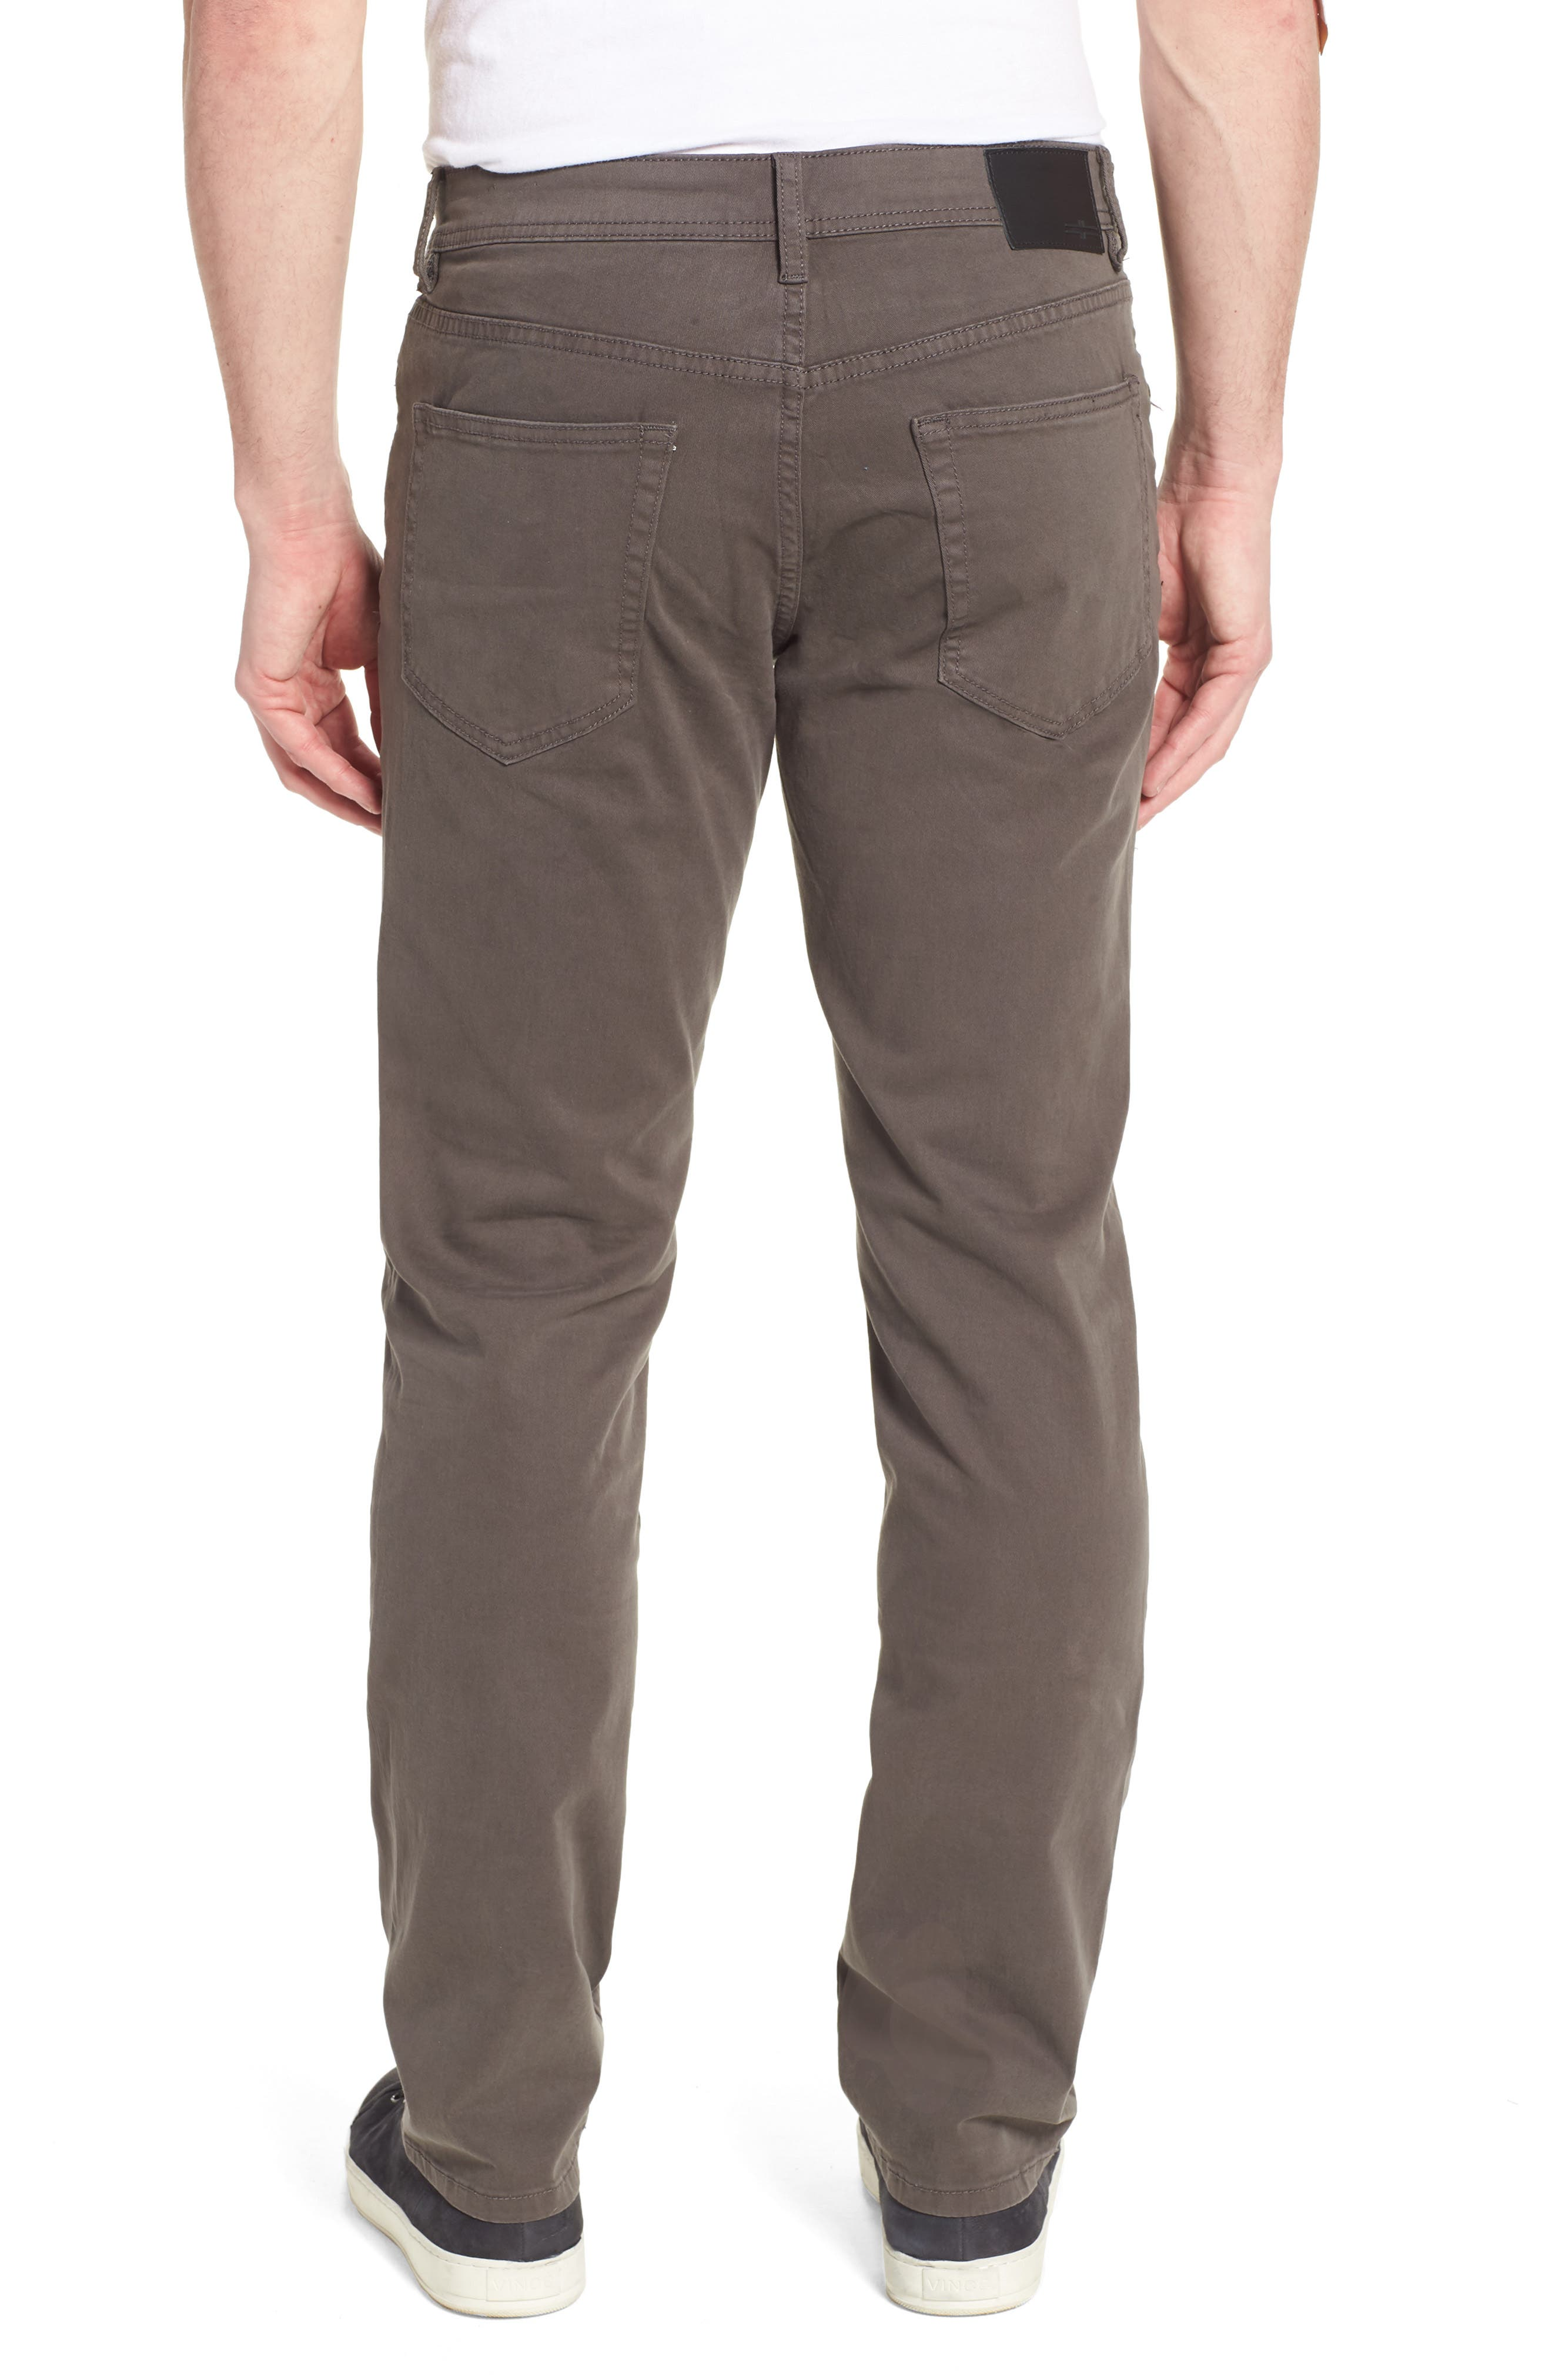 LIVERPOOL, Regent Relaxed Straight Leg Twill Pants, Alternate thumbnail 2, color, DEEP EARTH